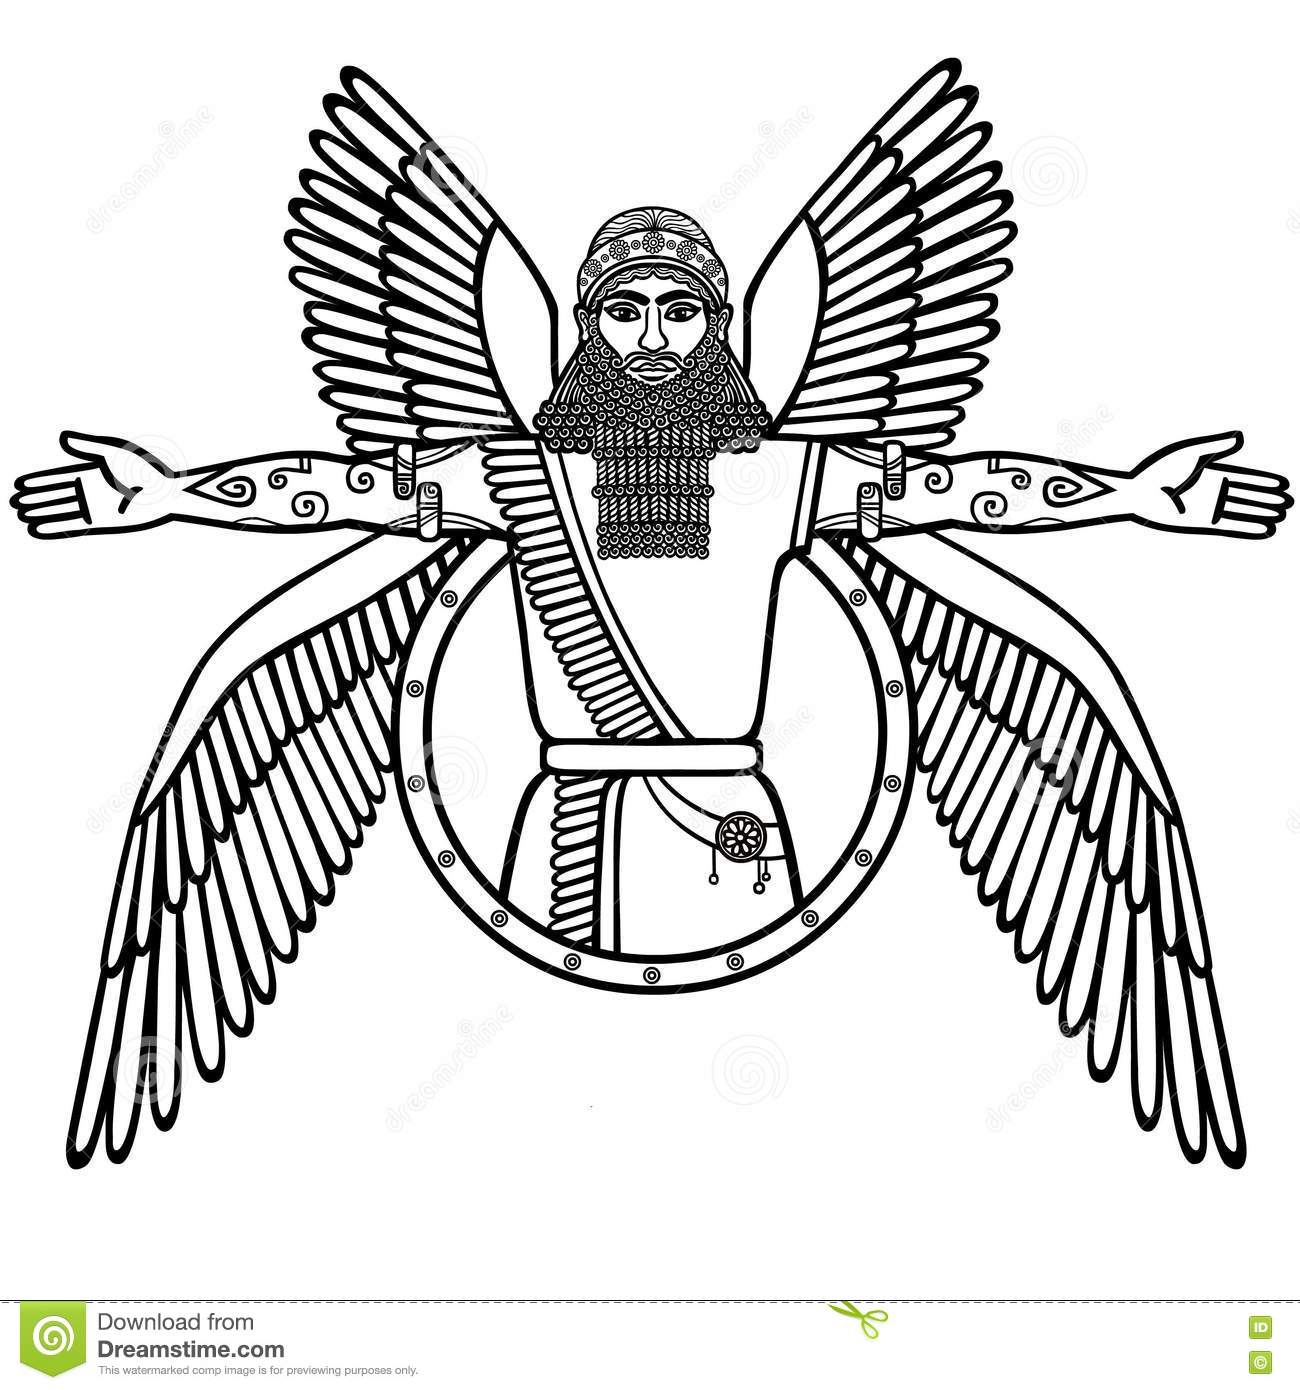 sumerian coloring pages - ancient assyrian winged deity stock vector image 74705498